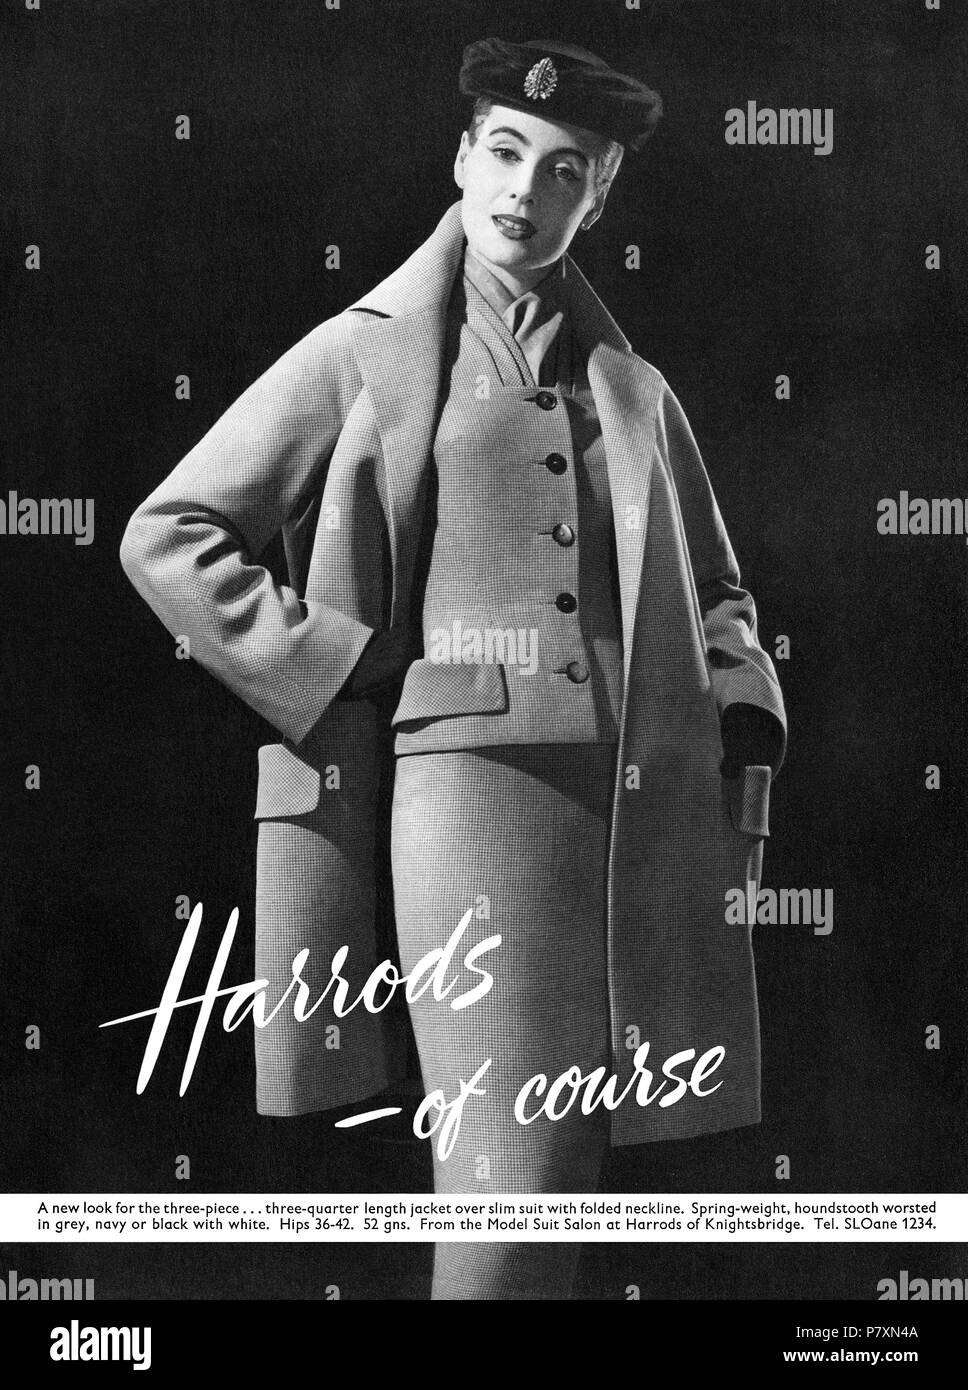 1956 British advertisement for Harrods department store Model Suit Salon. - Stock Image